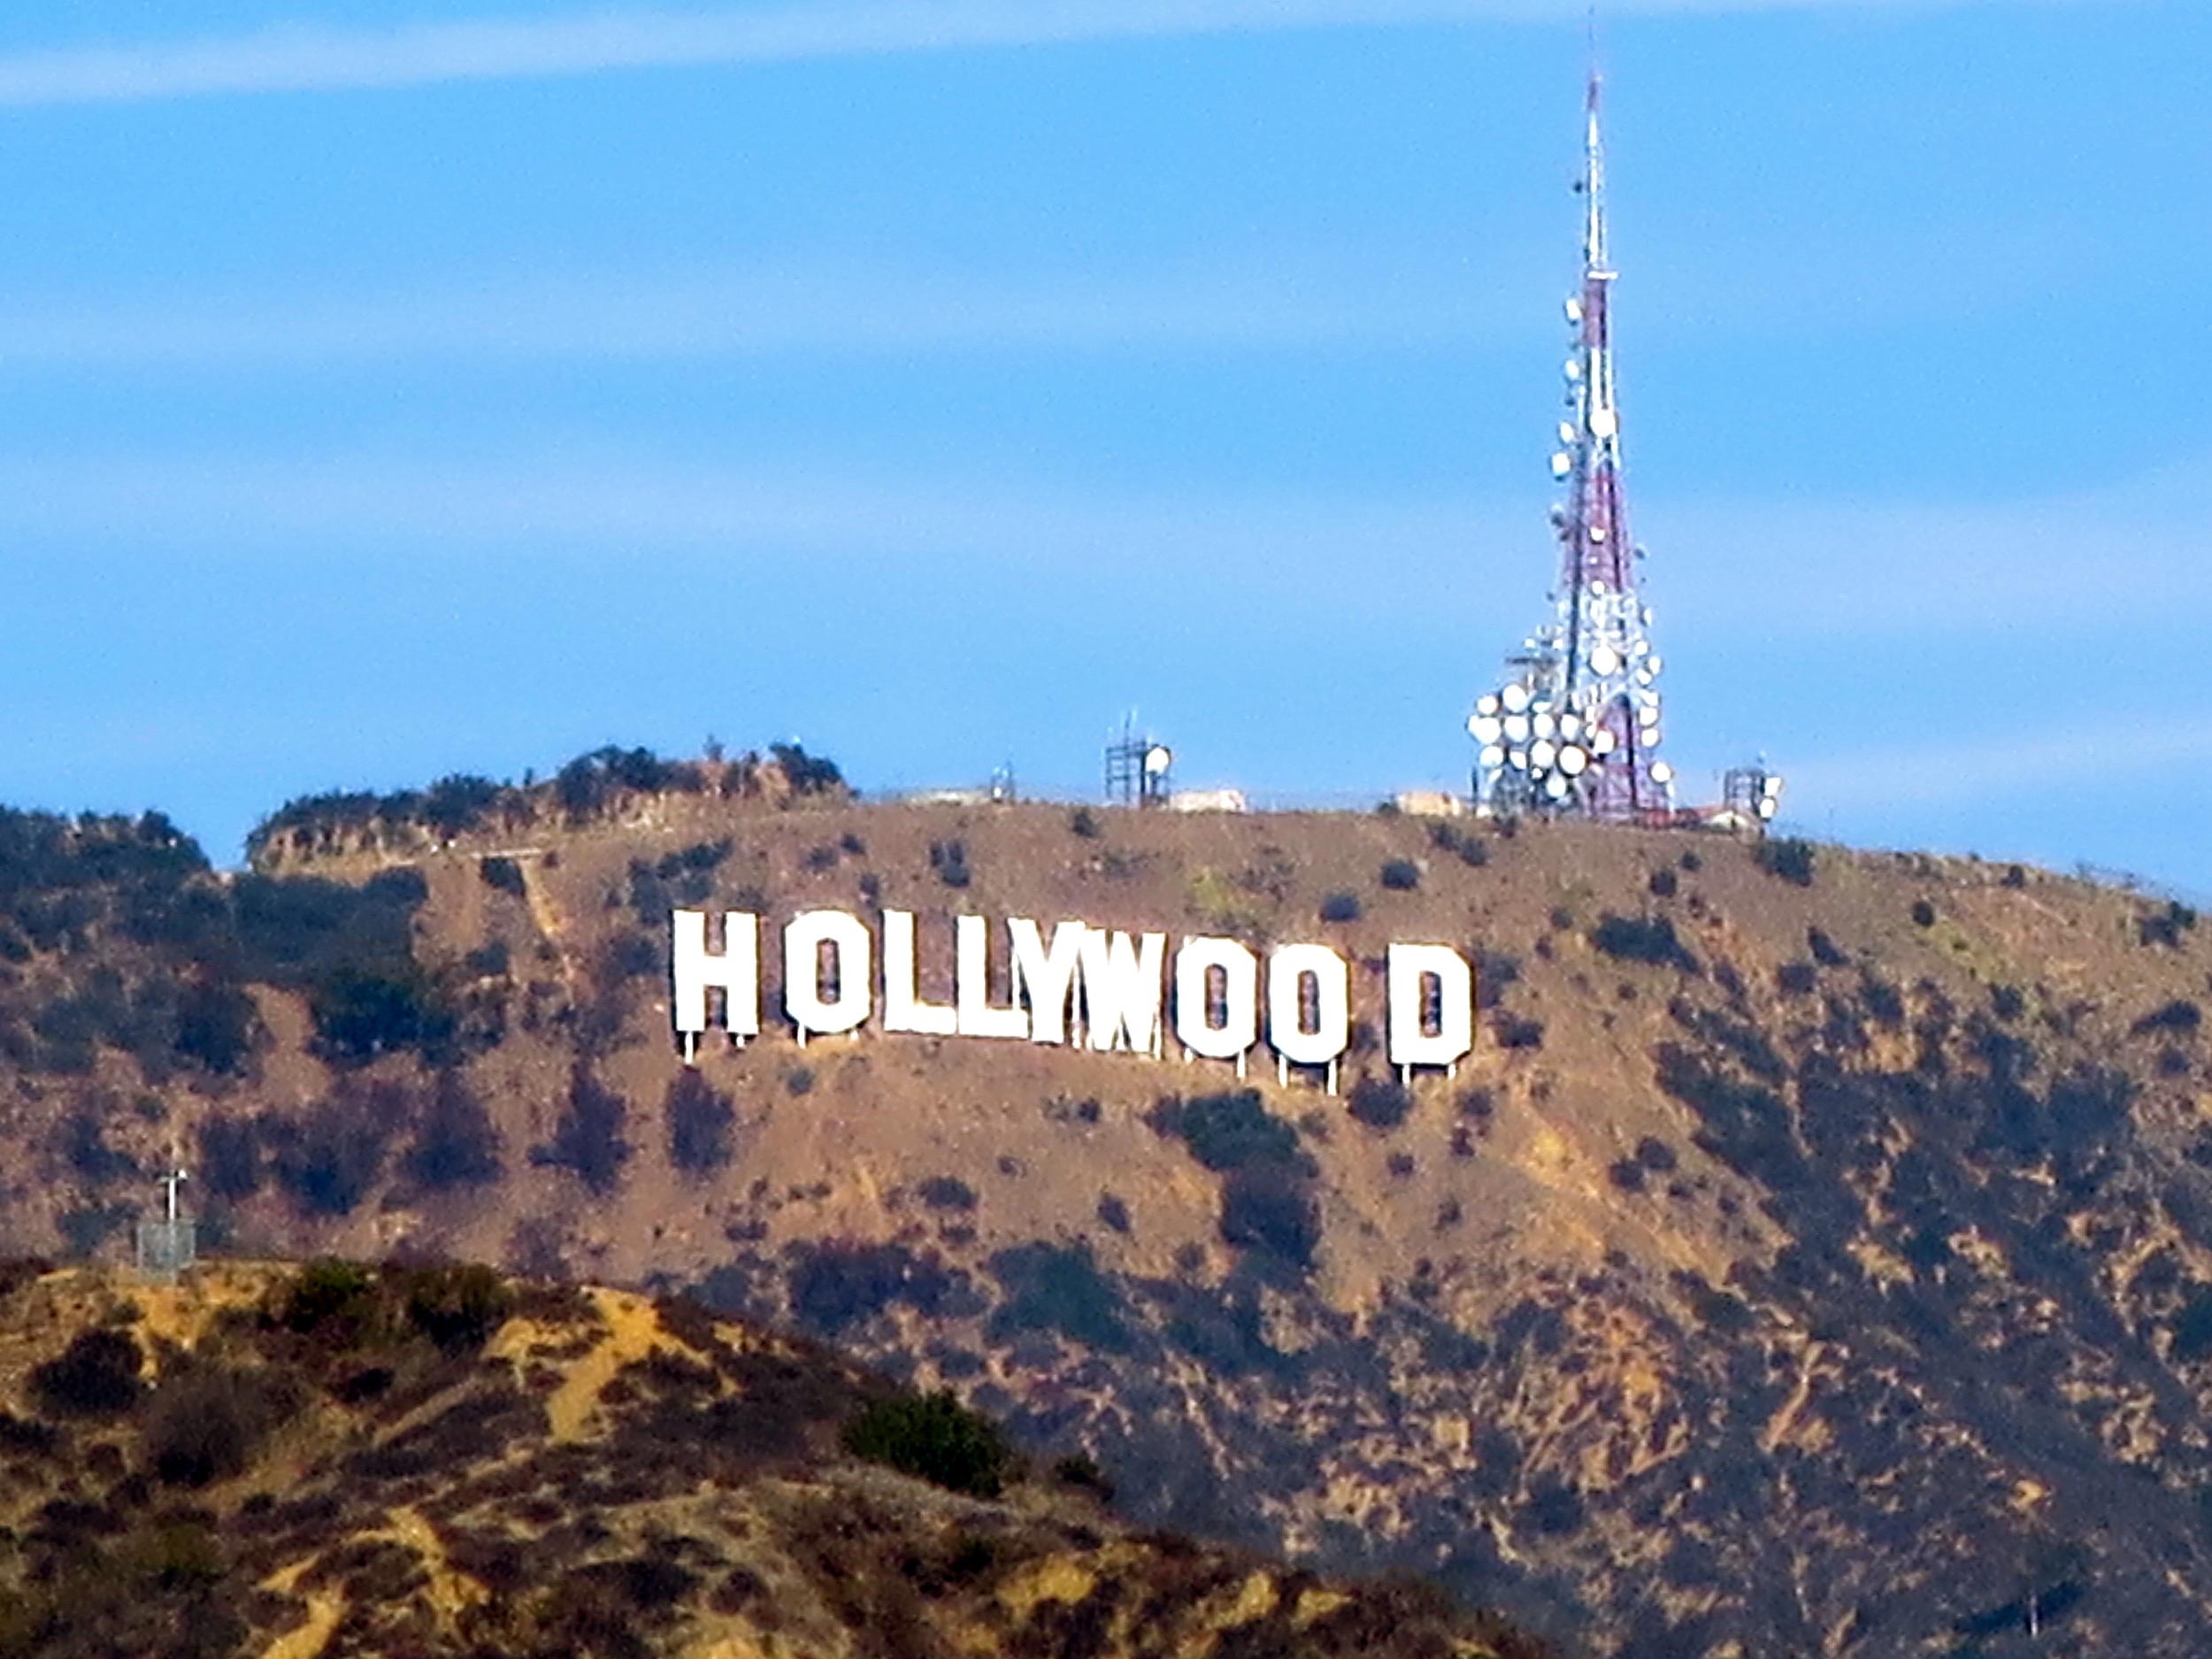 The obligatory Hollywood sign pic!